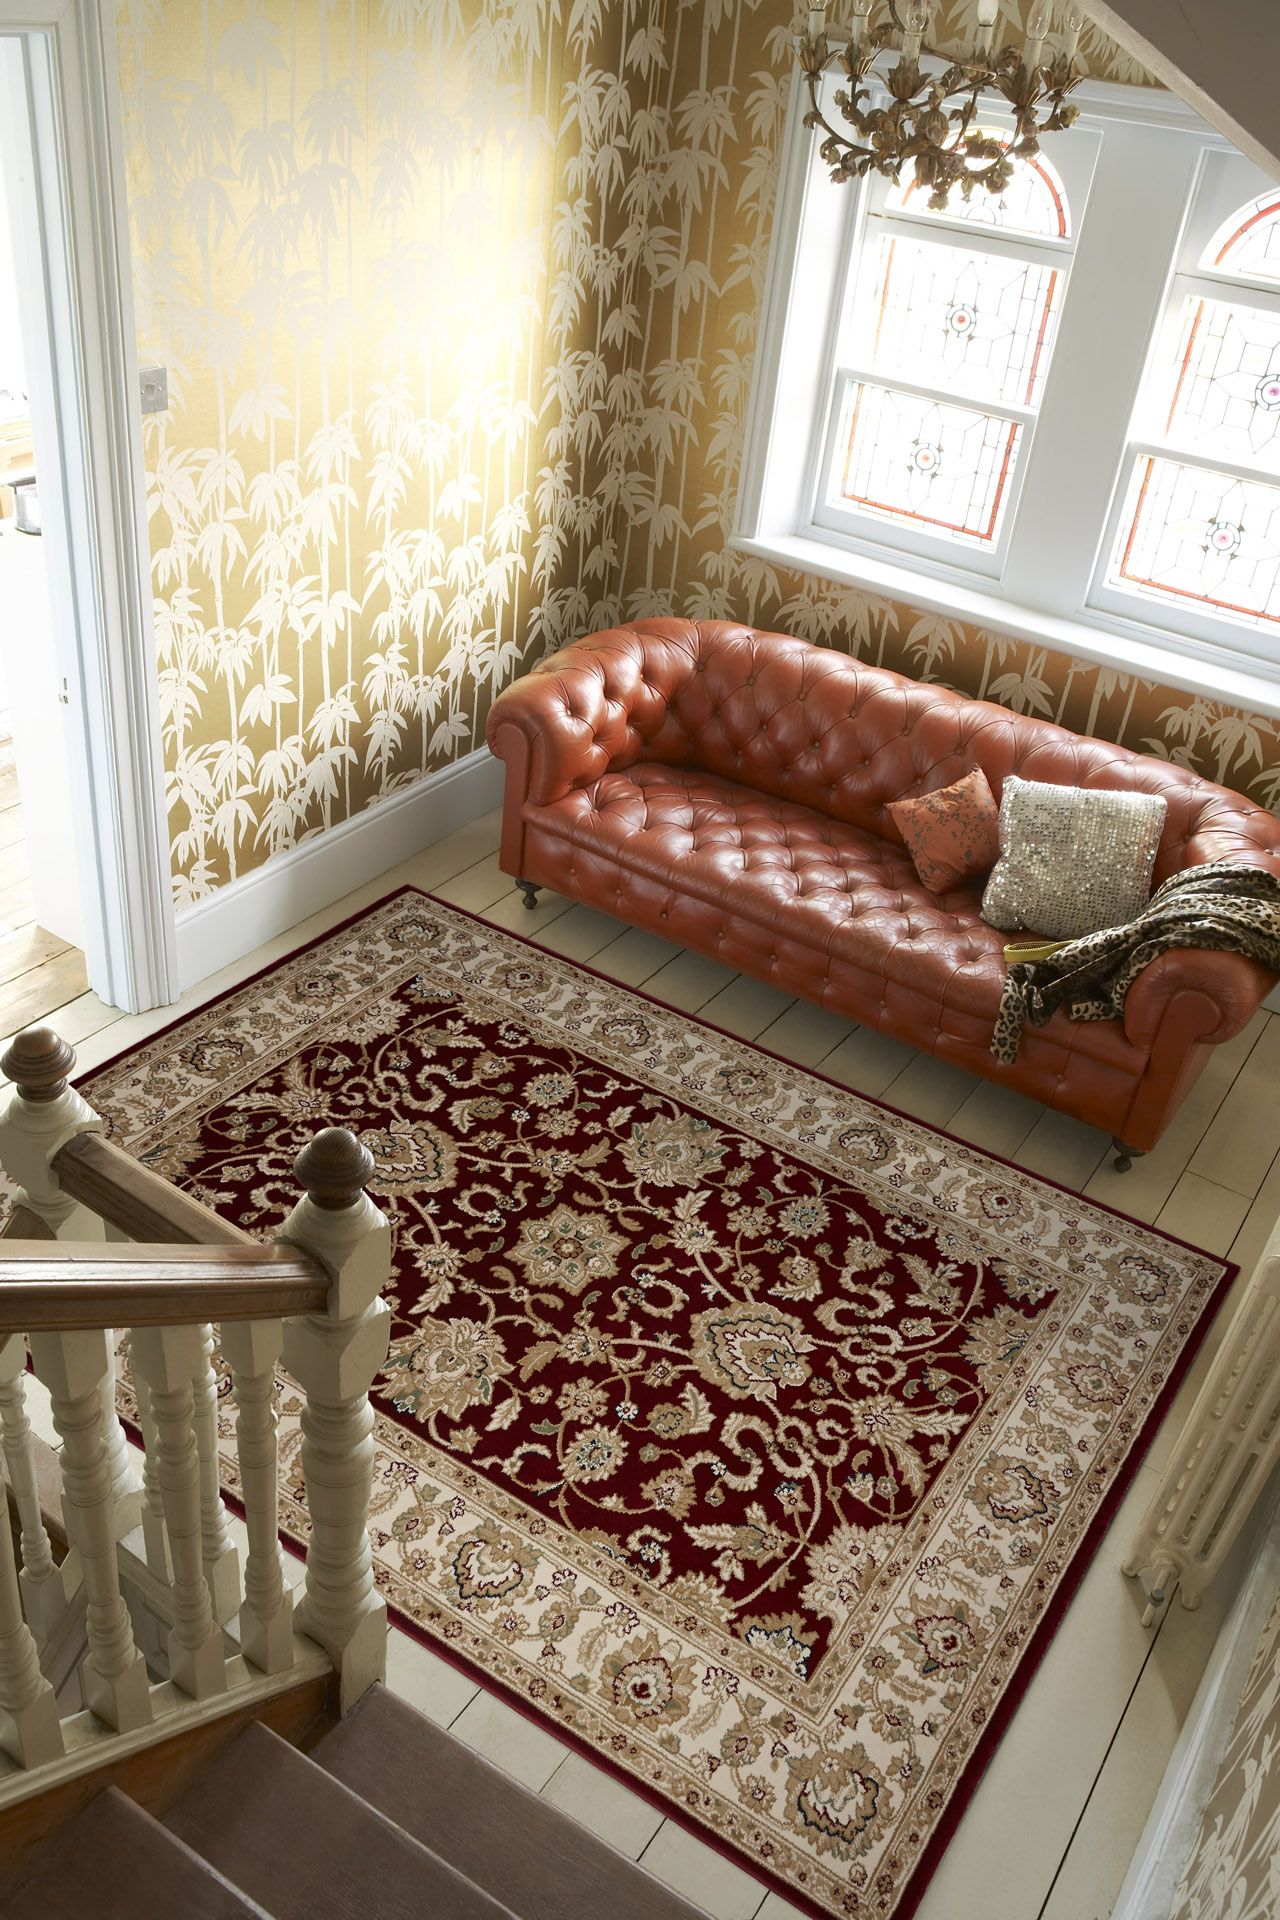 The Red Aristocrat Rug From Plantation Rugs Offer A Traditional